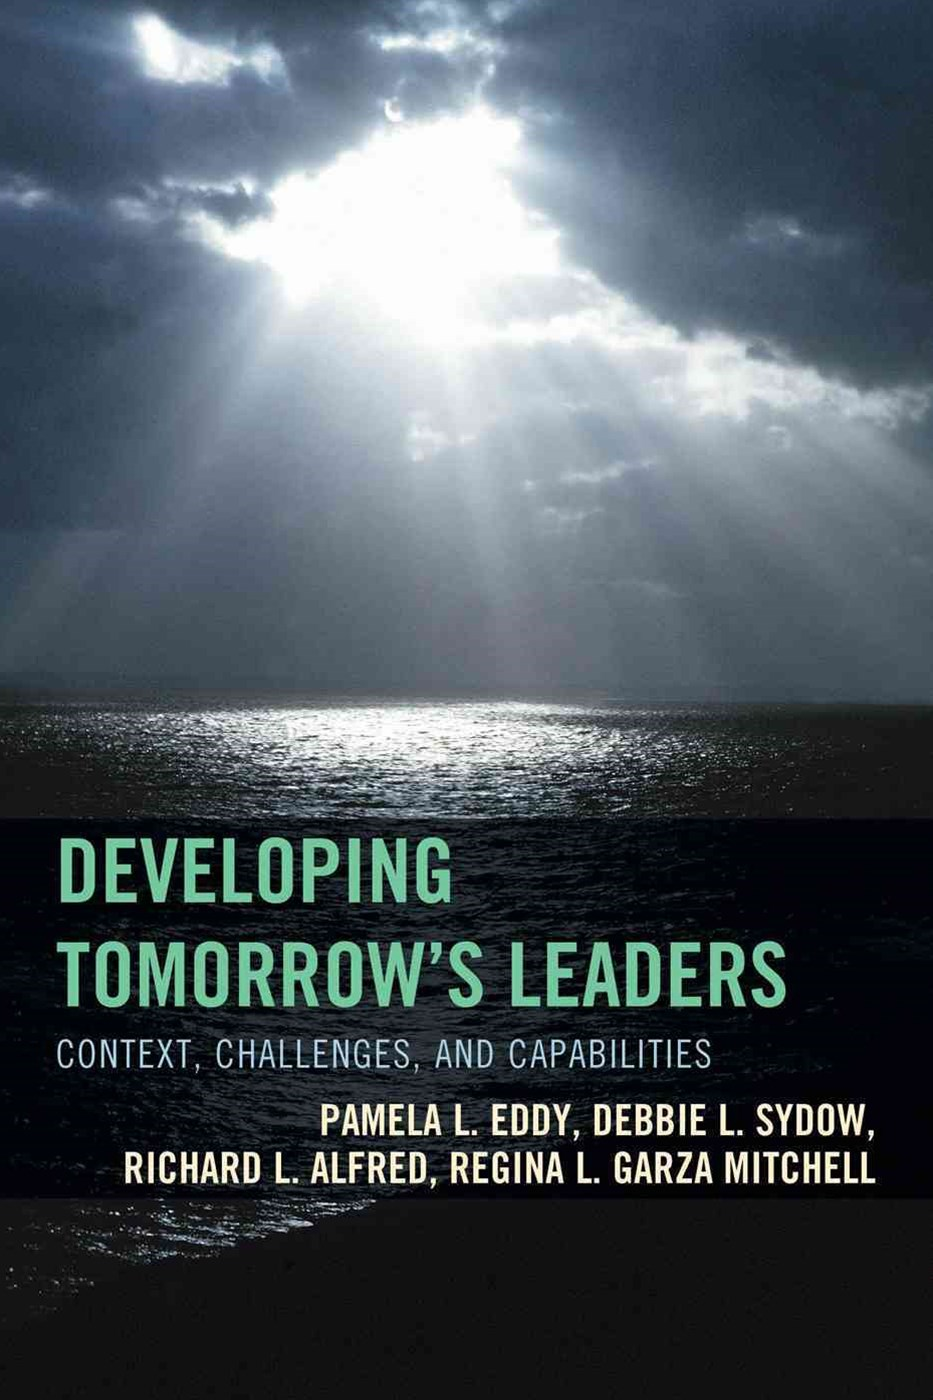 Developing Tomorrow's Leaders